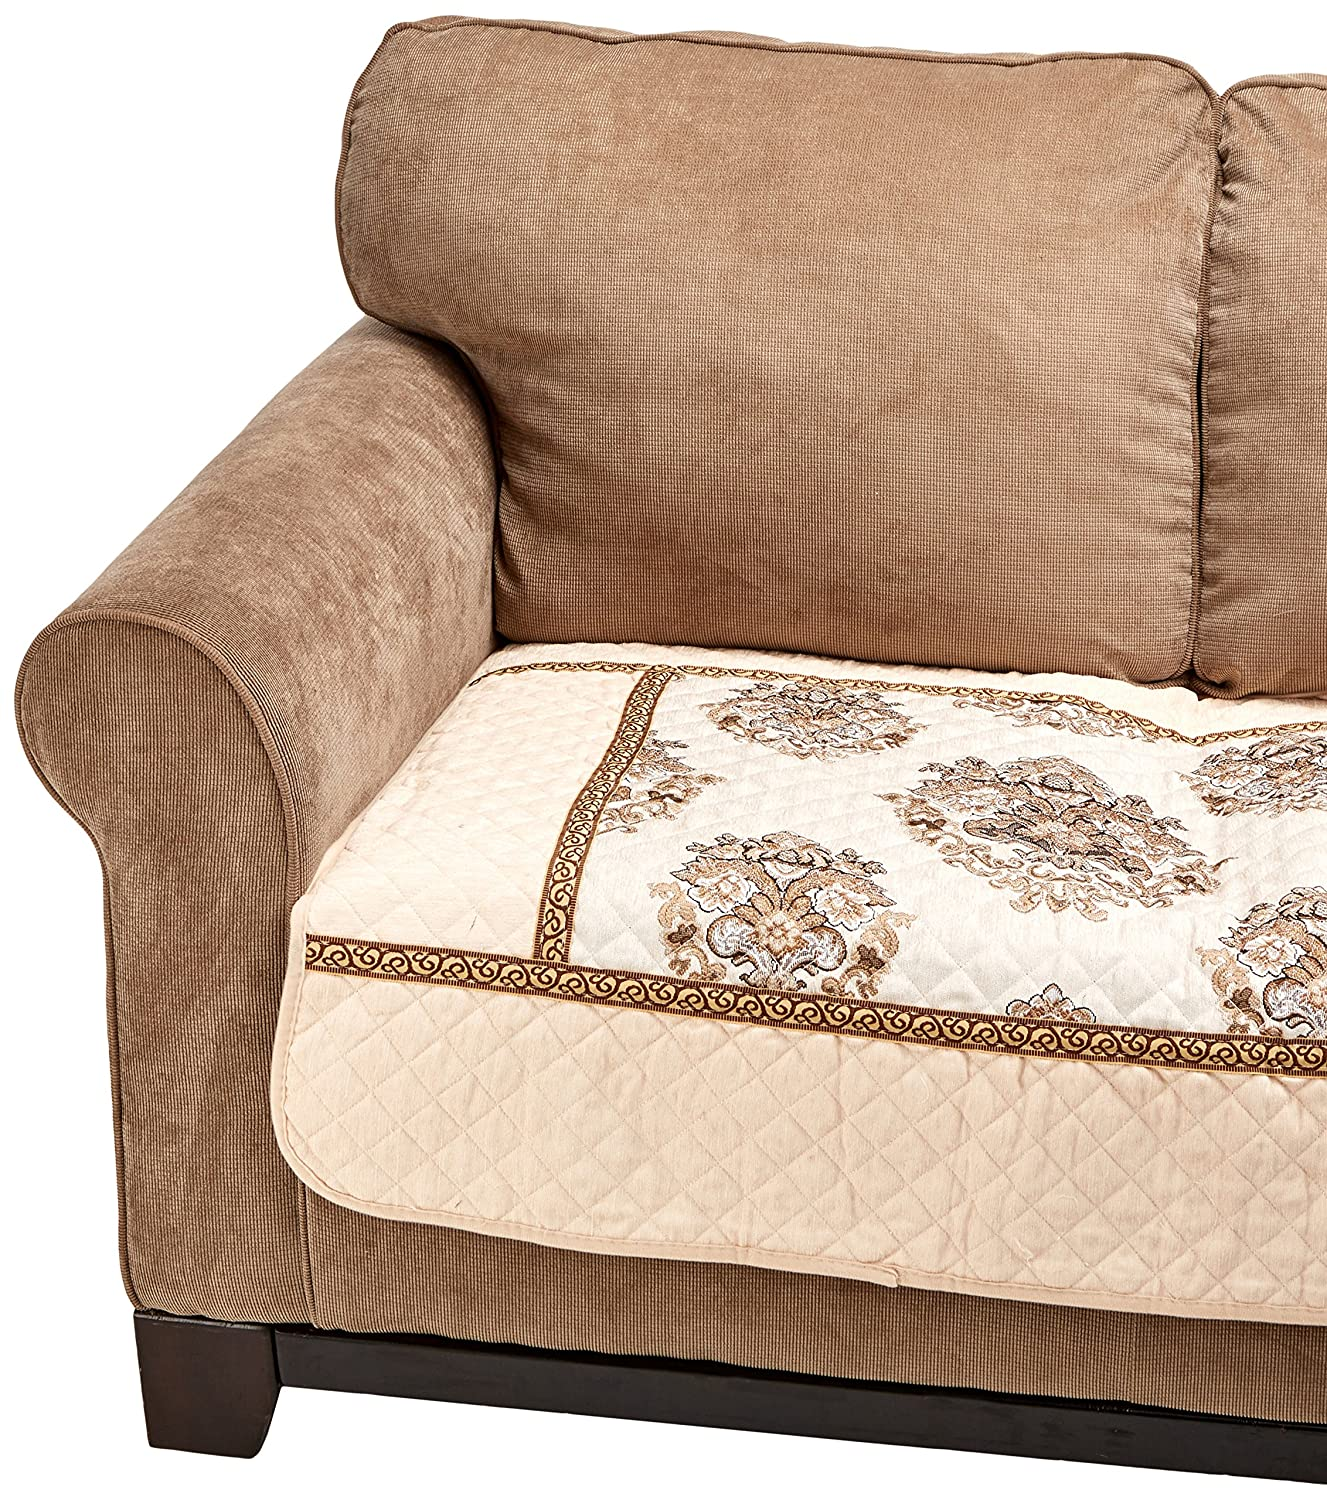 Amazon it Chenille Quilted Sectional Sofa Throw Pads